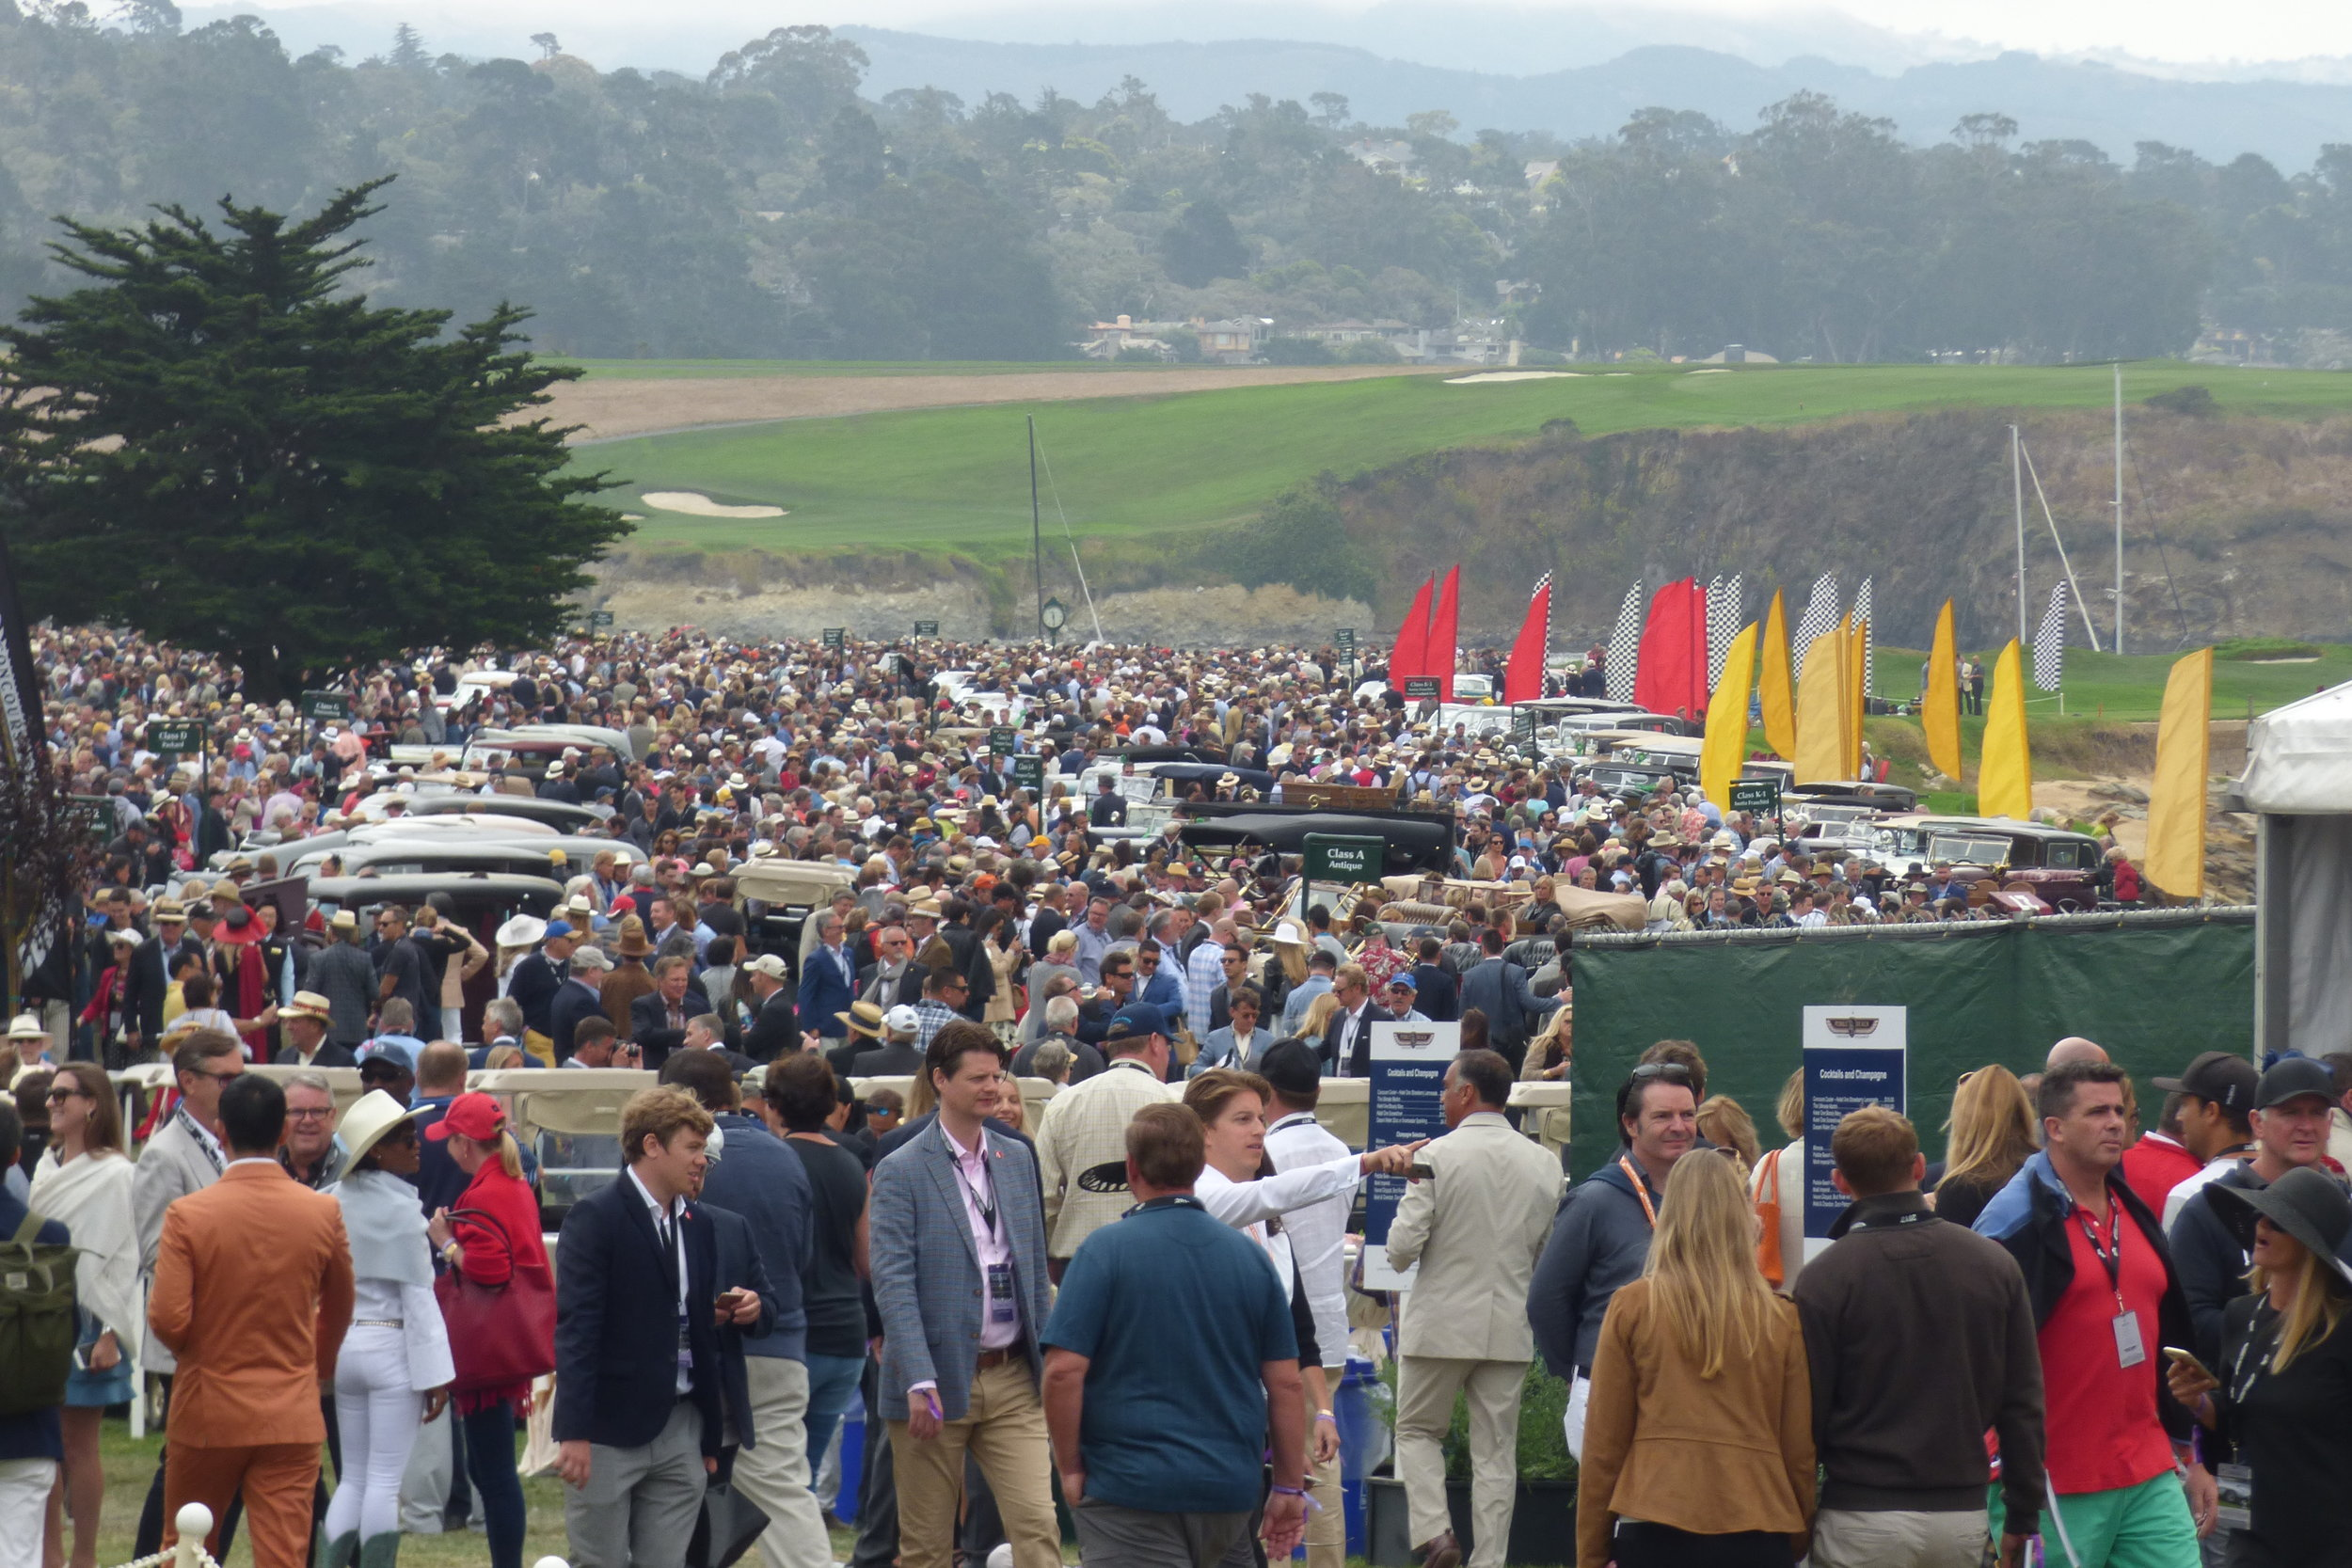 Pebble Beach Concours. This place is no joke.